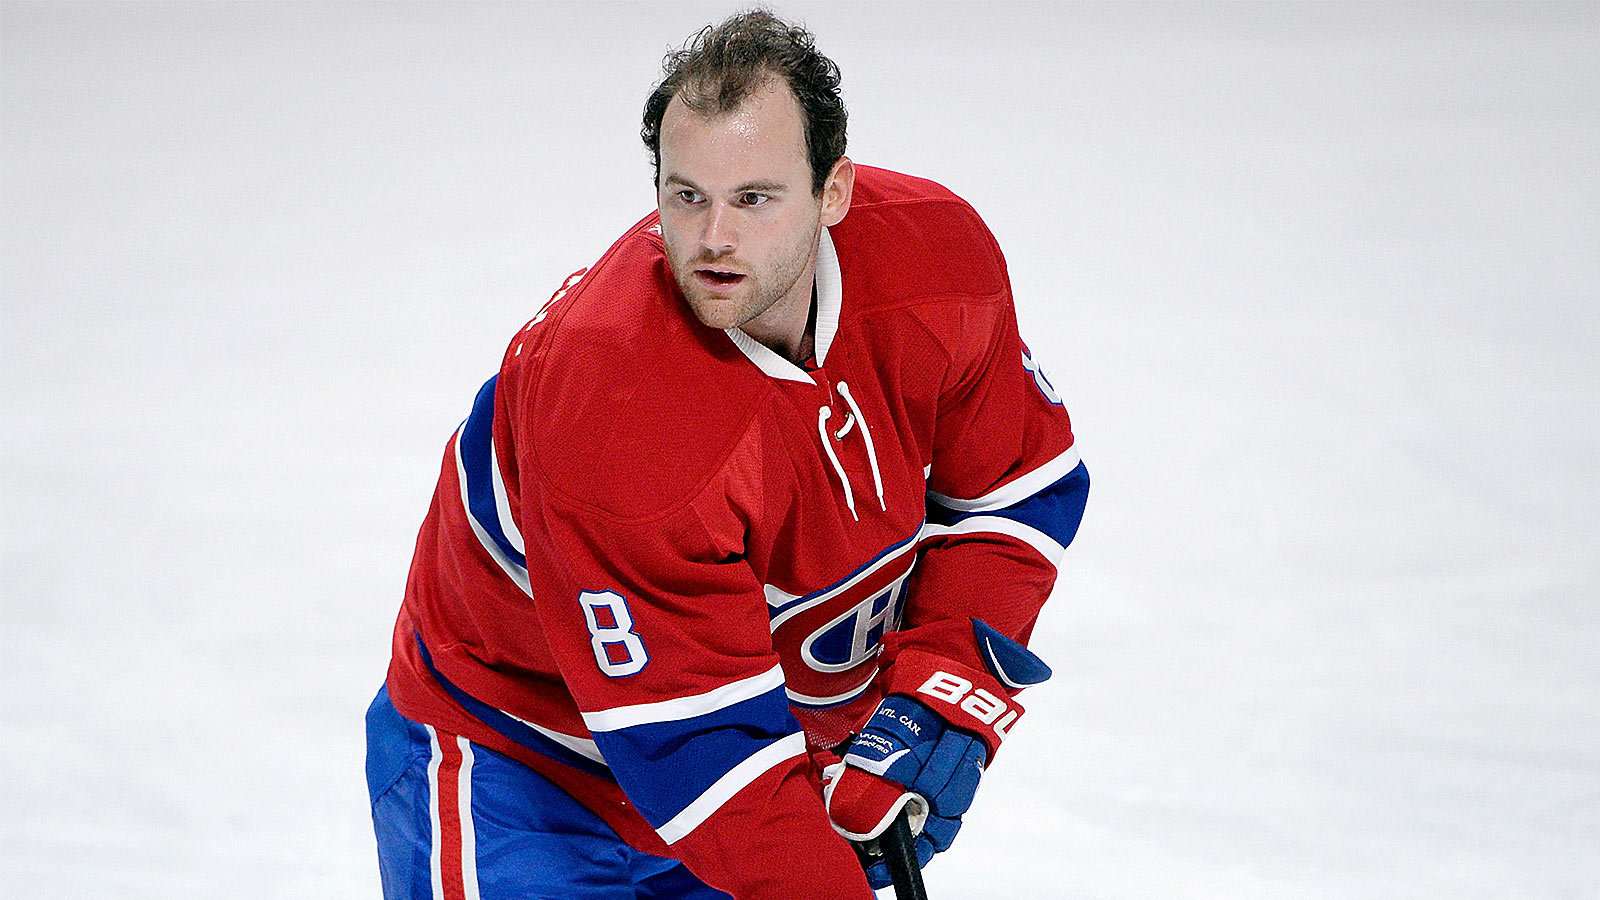 Canadiens' Kassian enters rehab program after auto accident